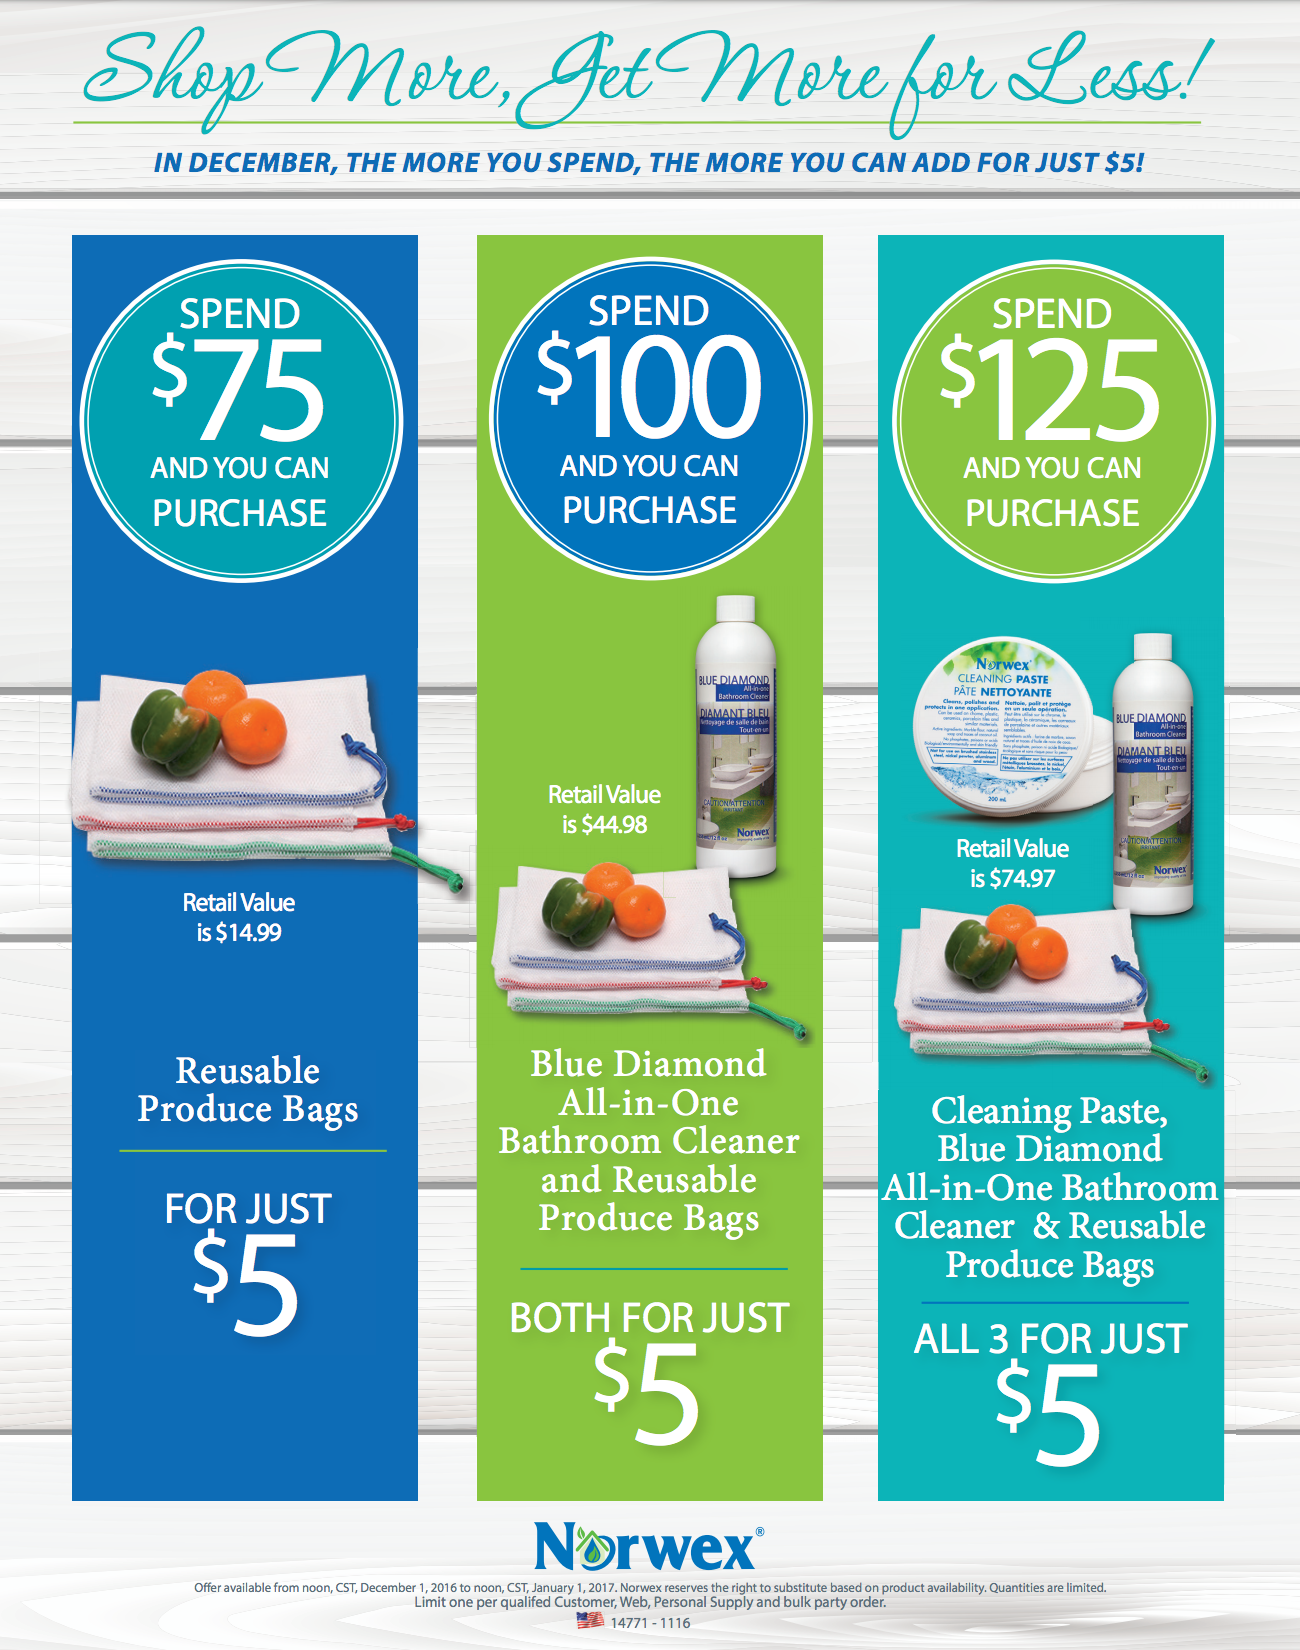 Spend and Get, Get, Get More with Norwex!